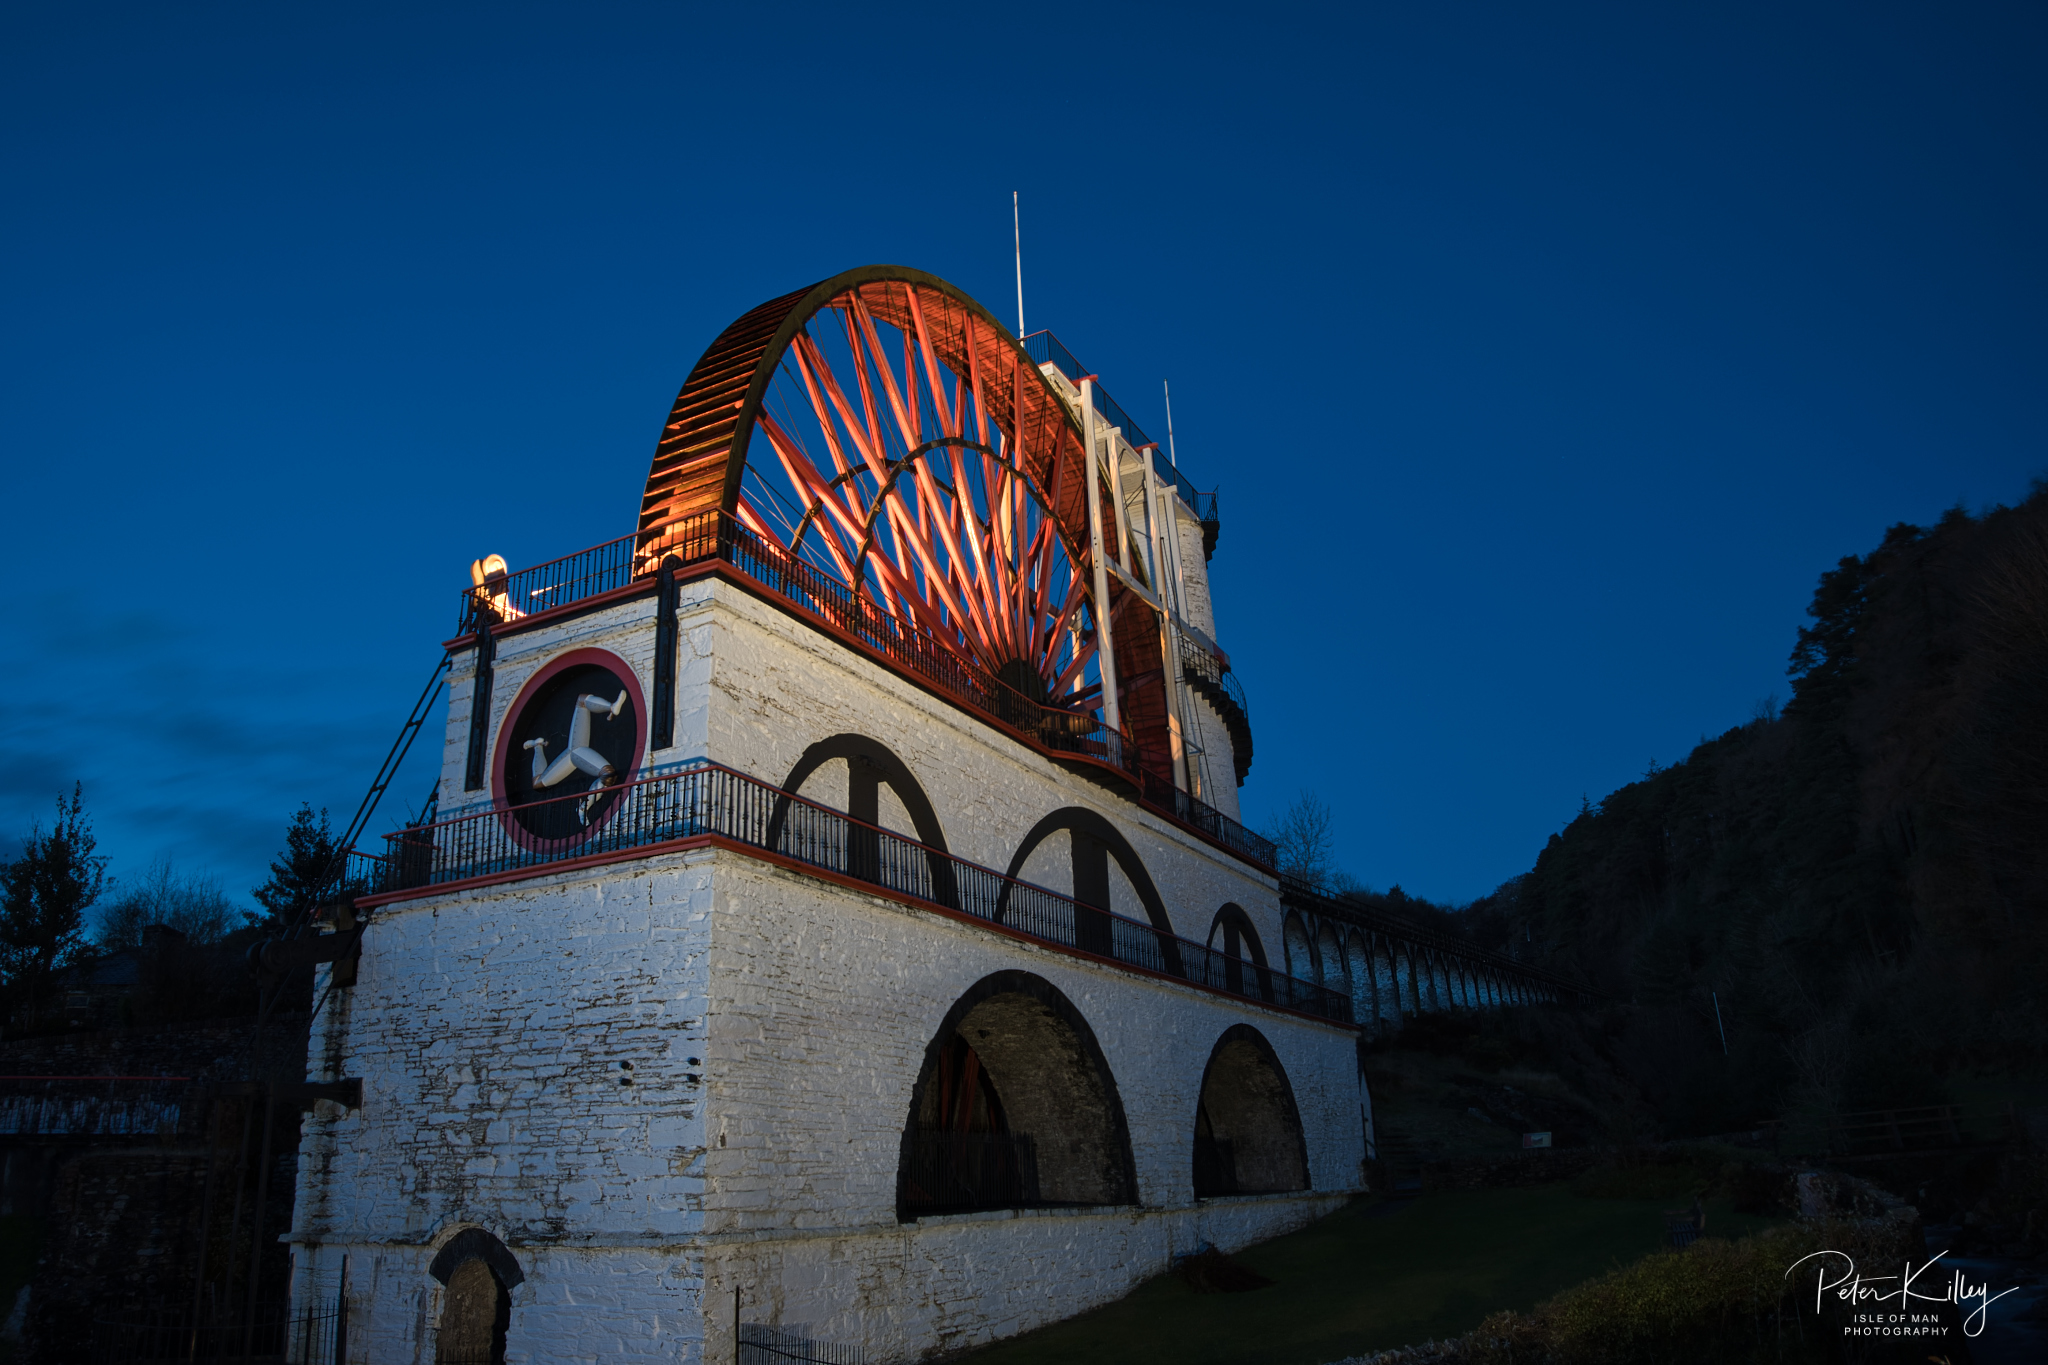 Blue Hour @ Laxey Wheel - © Peter Killey - www.manxscenes.com